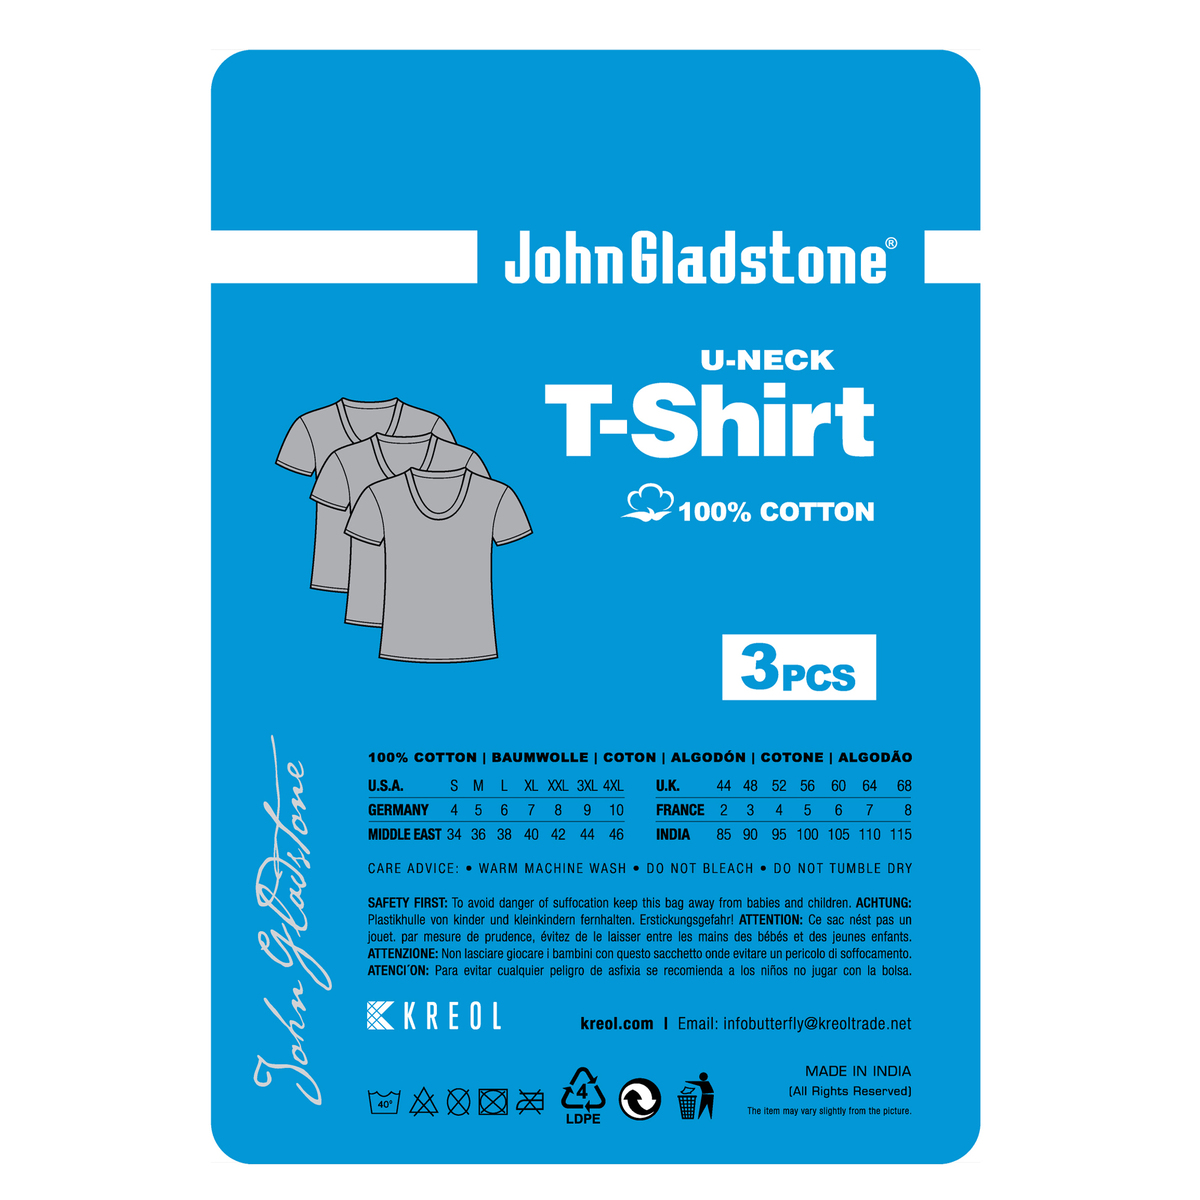 John Gladstone Men's Inner T-Shirt (U-Neck) 3Pc Pack White Large